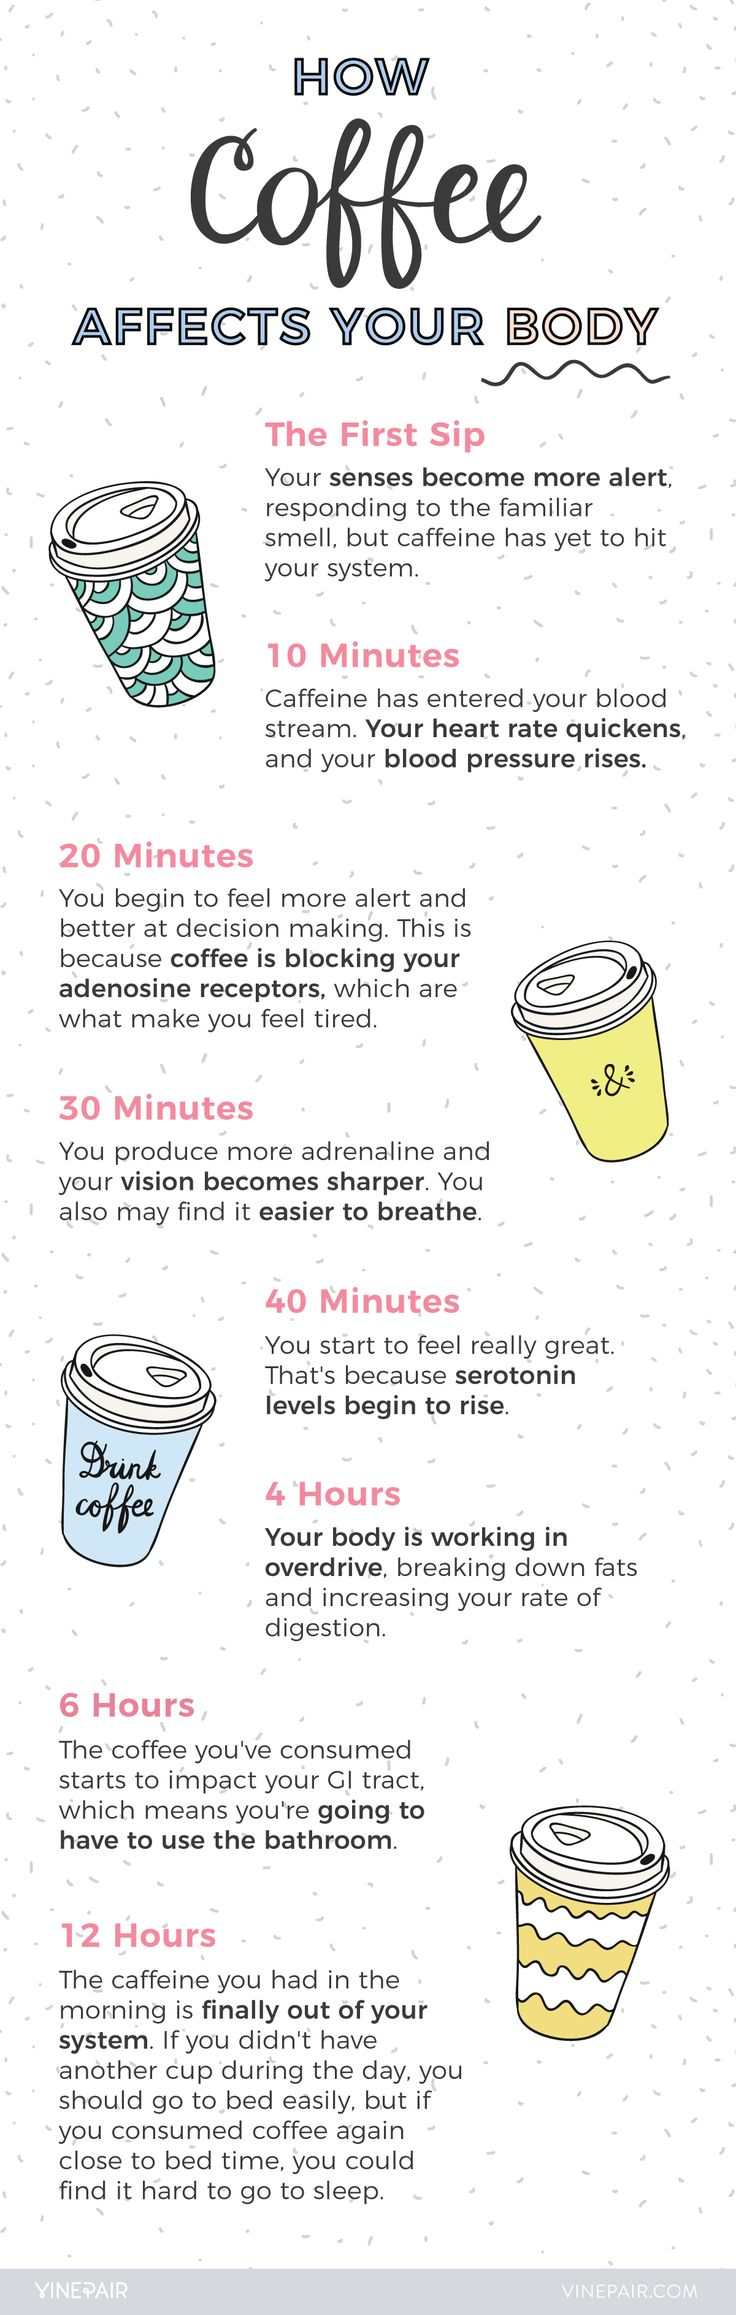 What Happens to Your Body When You Drink Coffee? - FYI - Doesn't' take 6 hours to go through your system..more like 30 - 60 minutes.